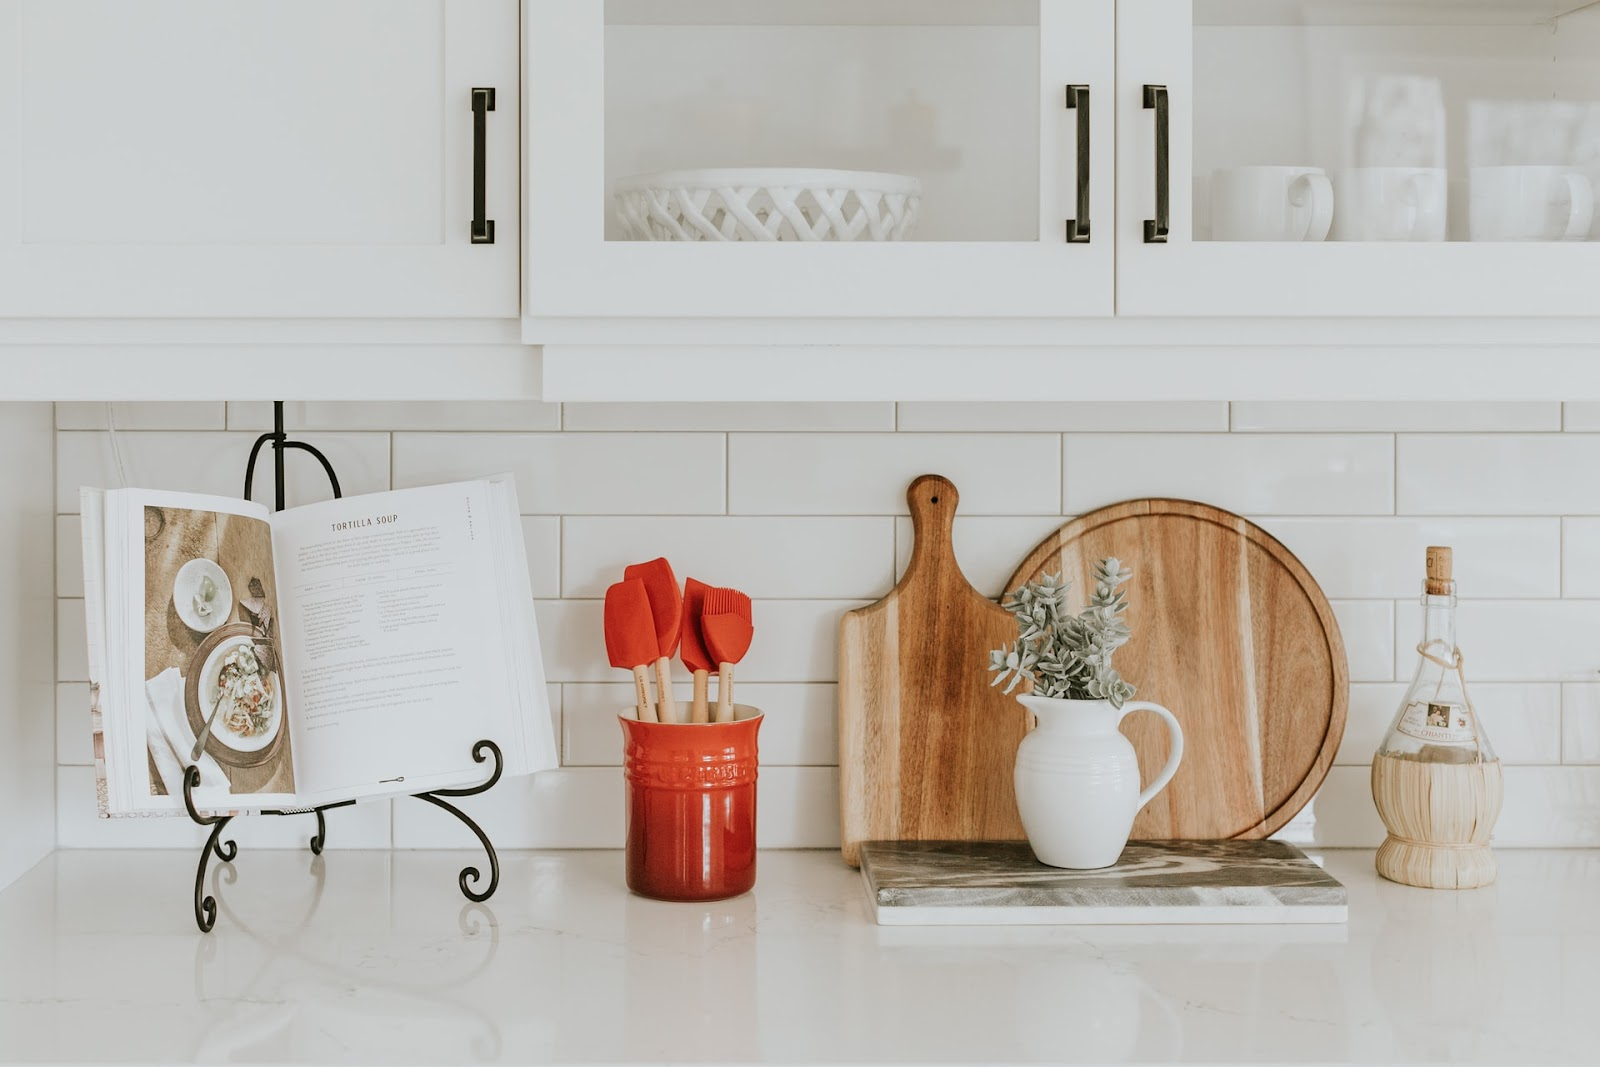 White cabinets, with a plant in a jar below, along with a bookstand and other elements.